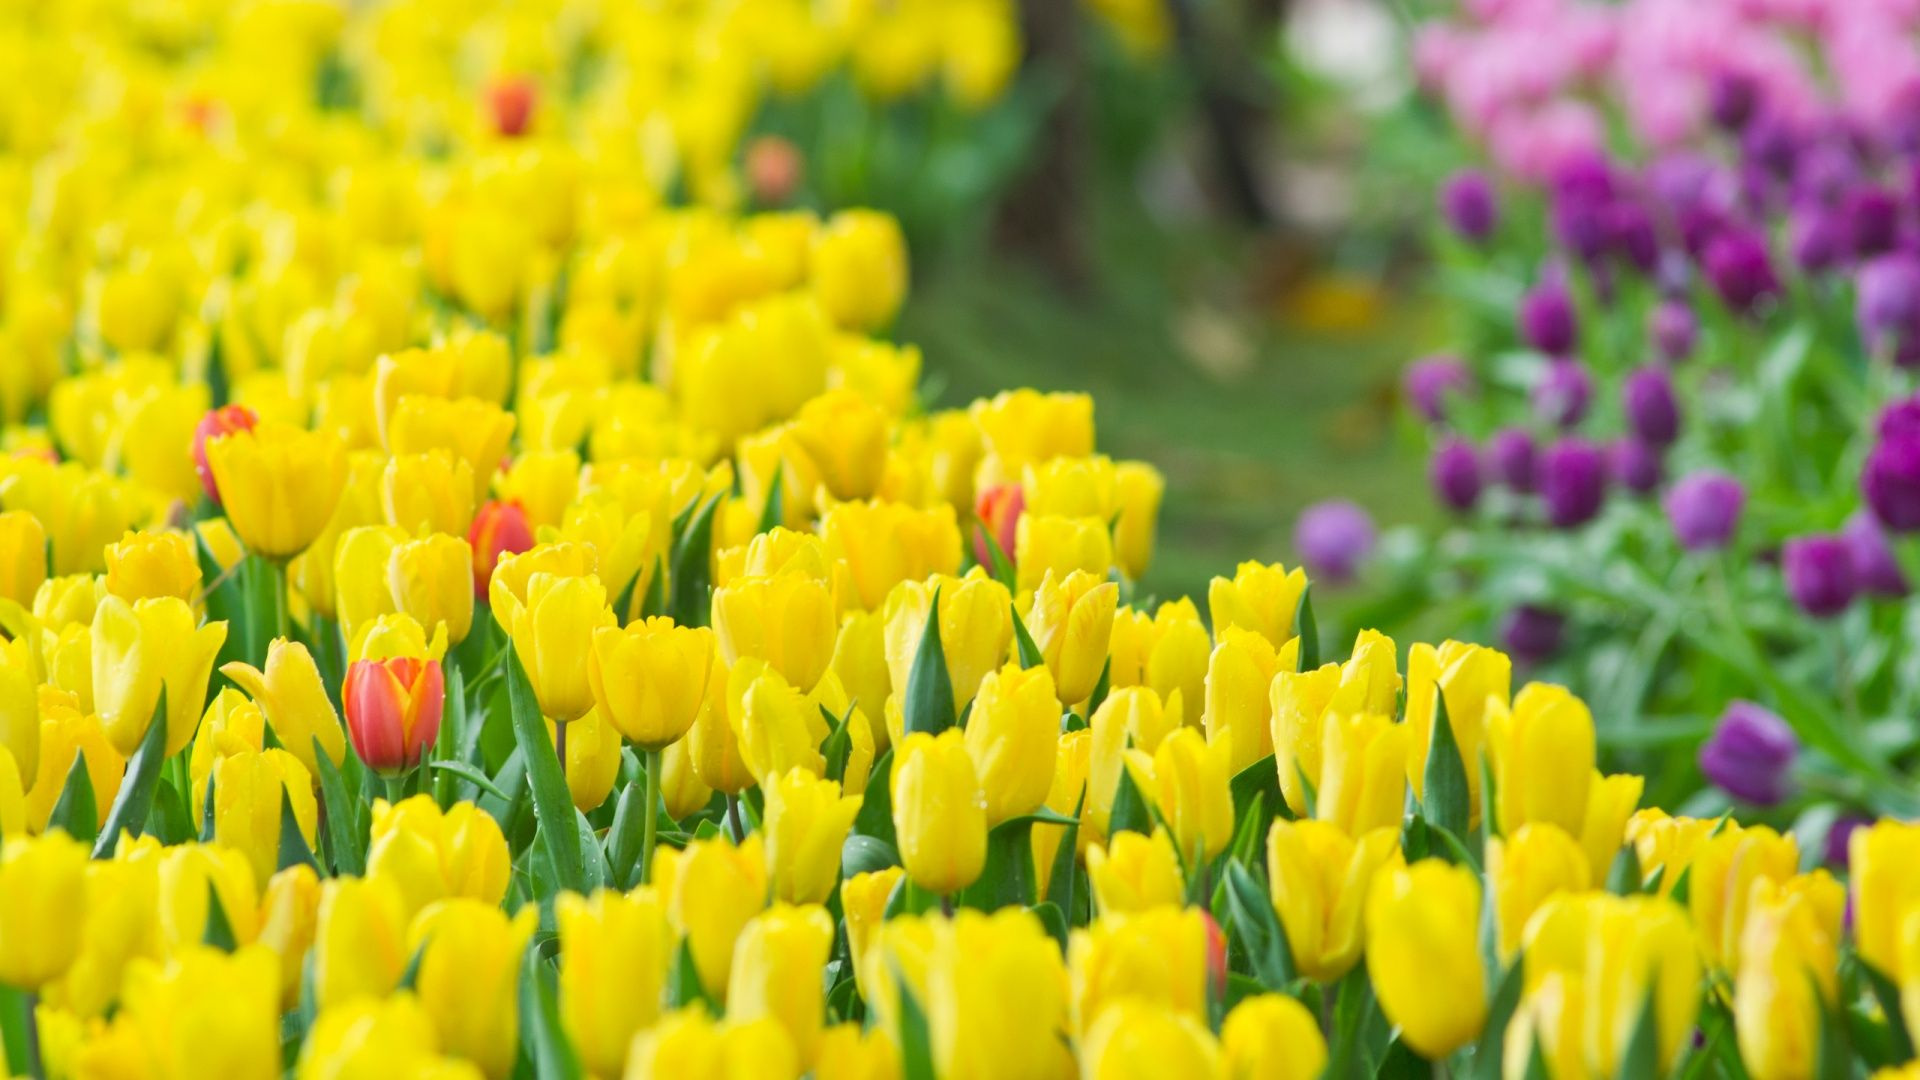 Category yellow wallpaper page 0 high resolution wallarthd tulips in any colour are another of my favorite flowers i would love to have a garden full of all sorts of different flowers in an array of bright colours mightylinksfo Gallery